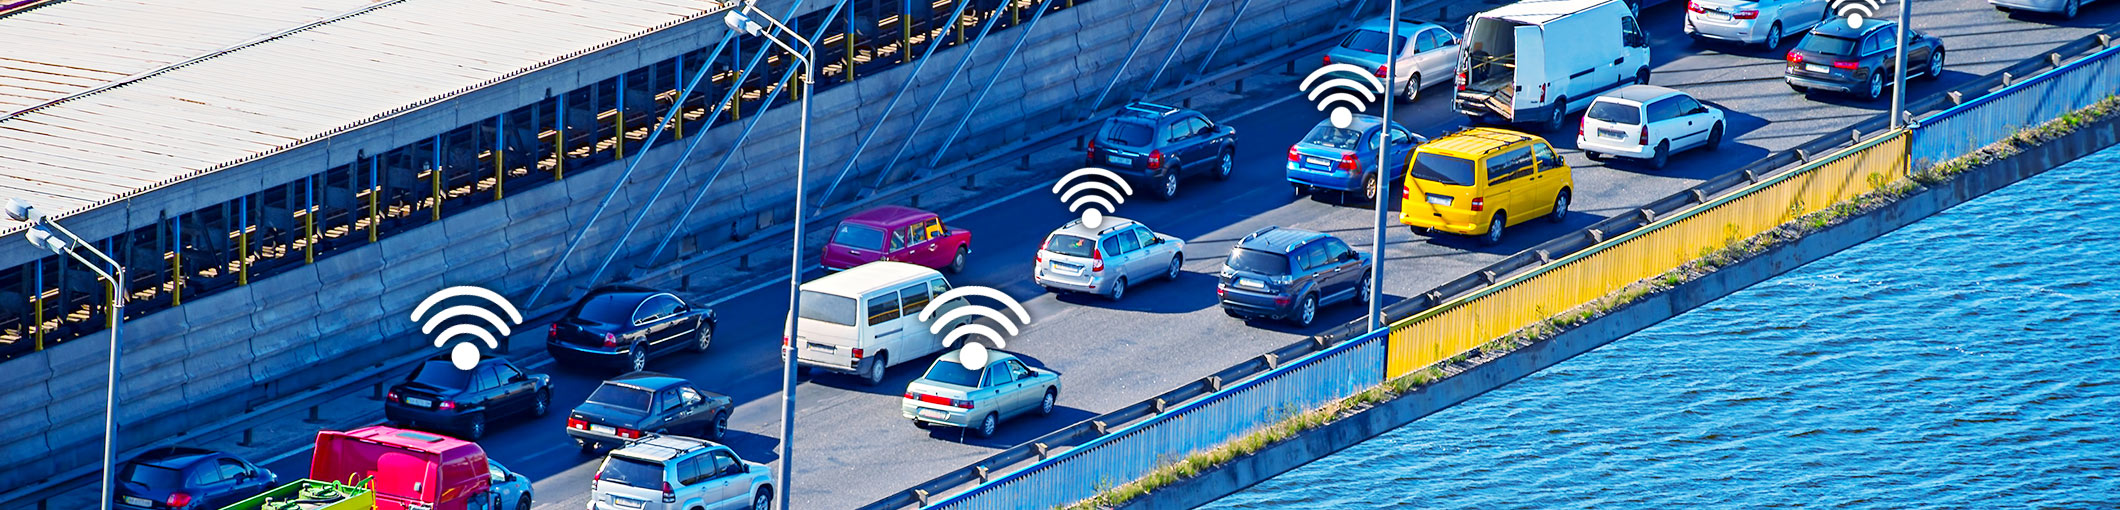 Connected Car-Fleets are in Immediate Risk of Cyber Attacks